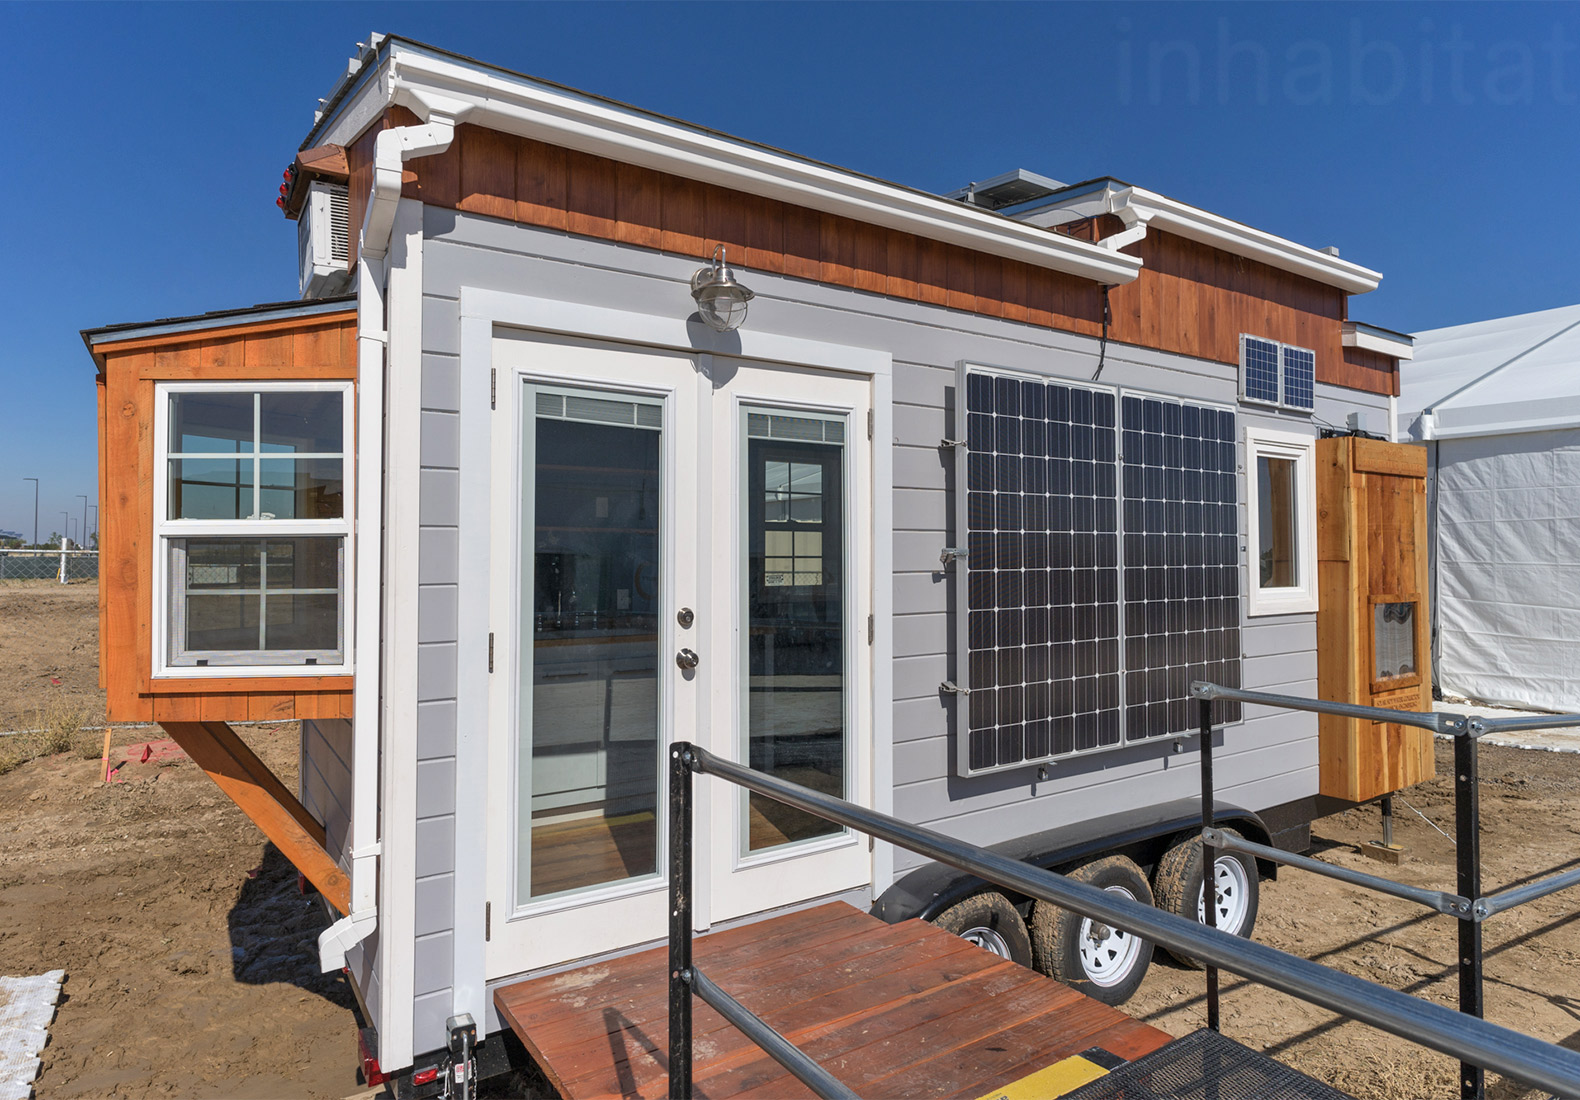 Student-built solar-powered tiny home represents new vision for the American dream